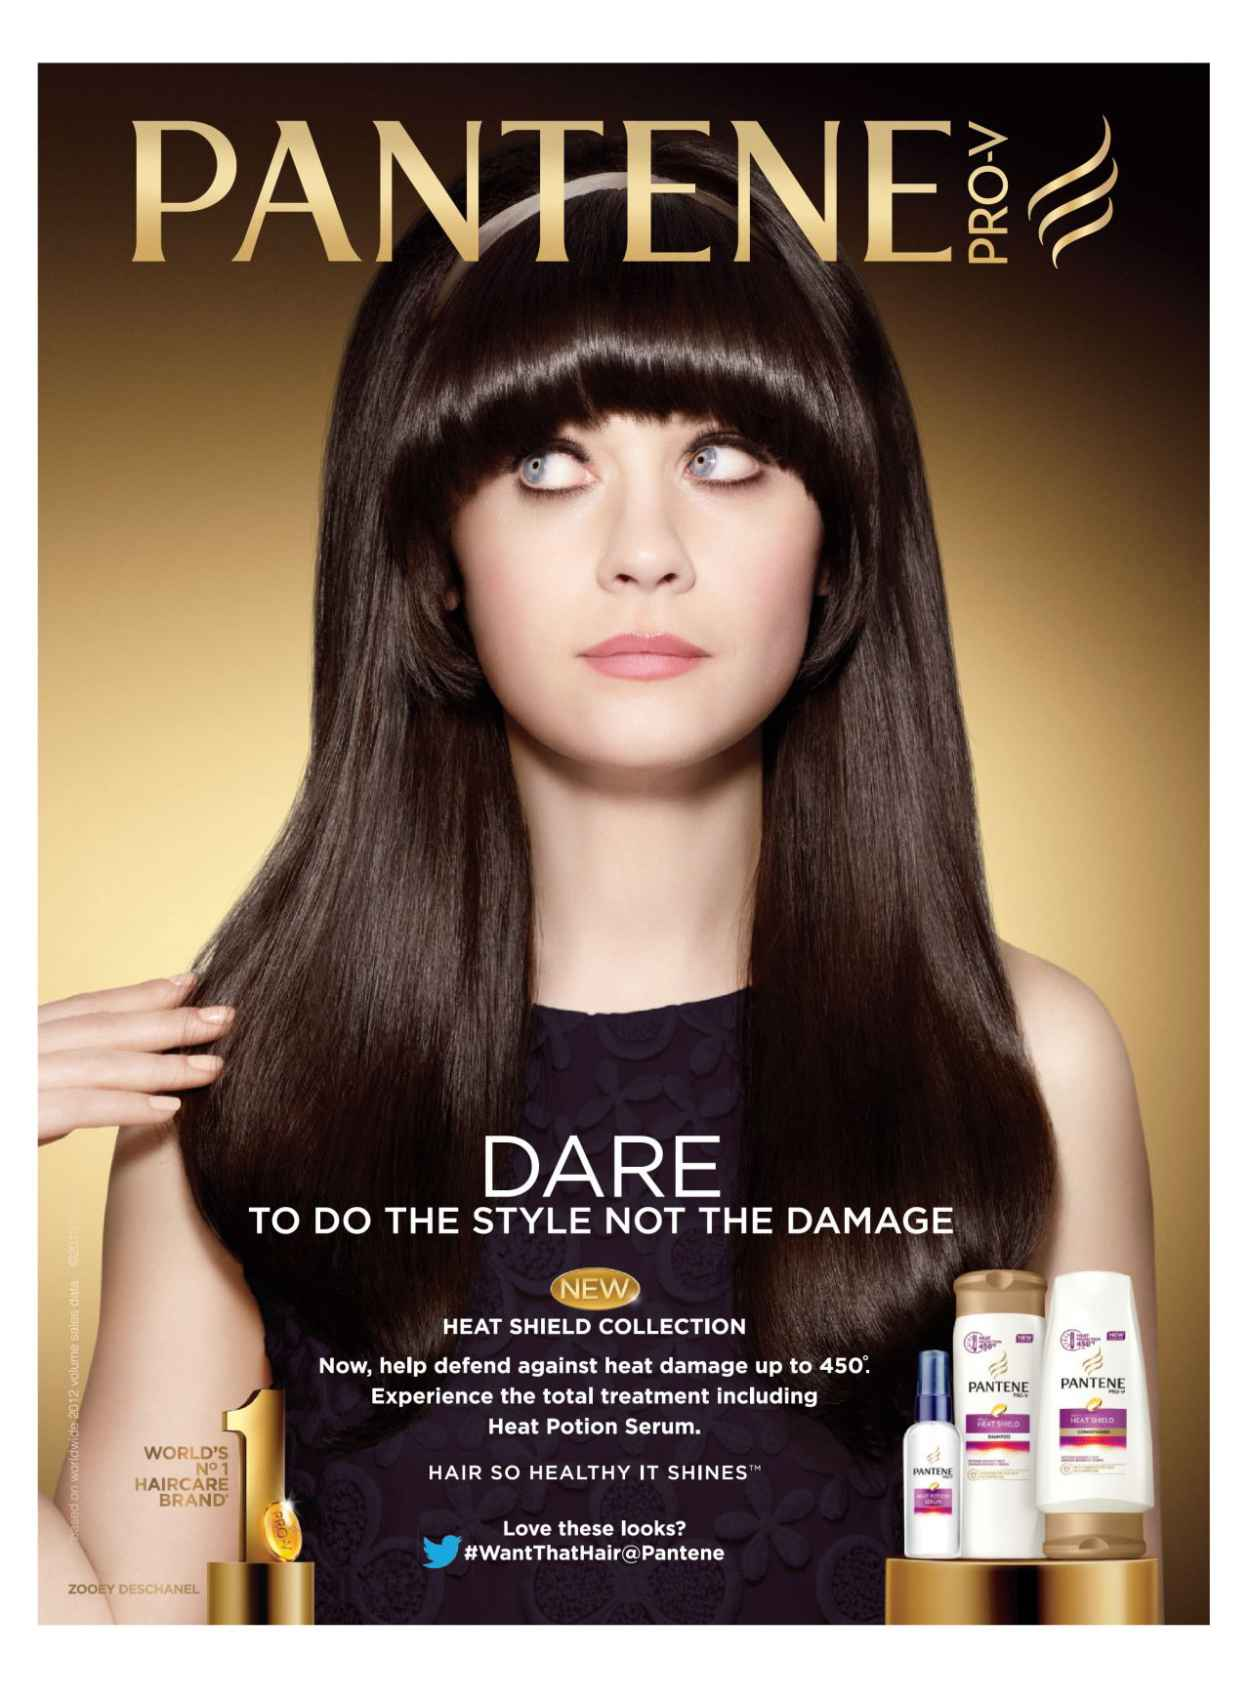 An advertisement for pante prop v shampoo